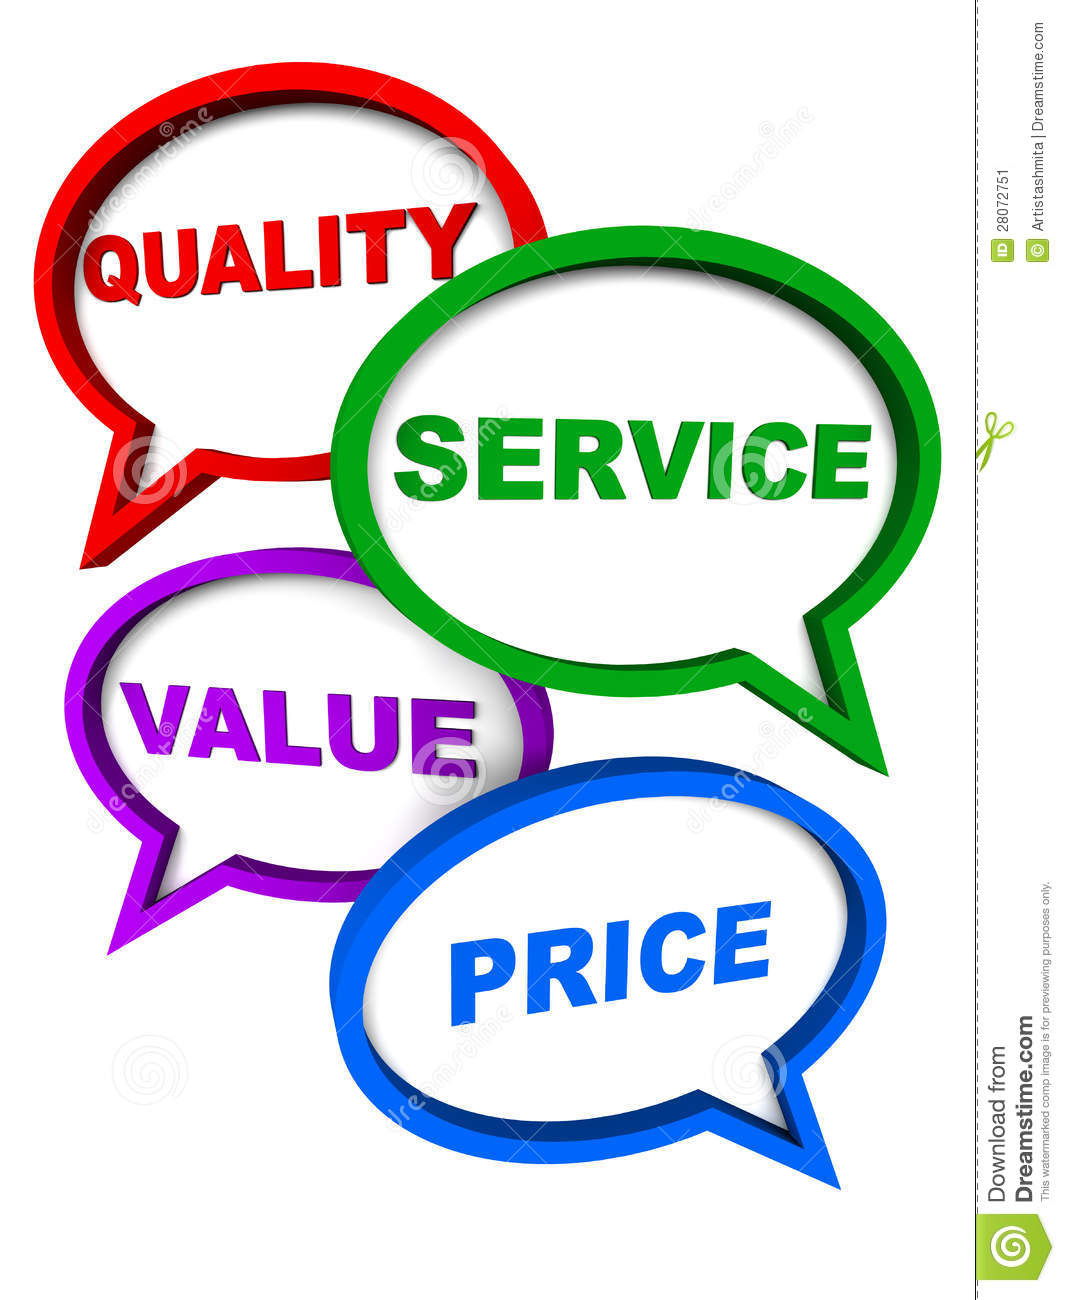 quality service value price stock image image 28072751 accountant clip art free accounting clip art images